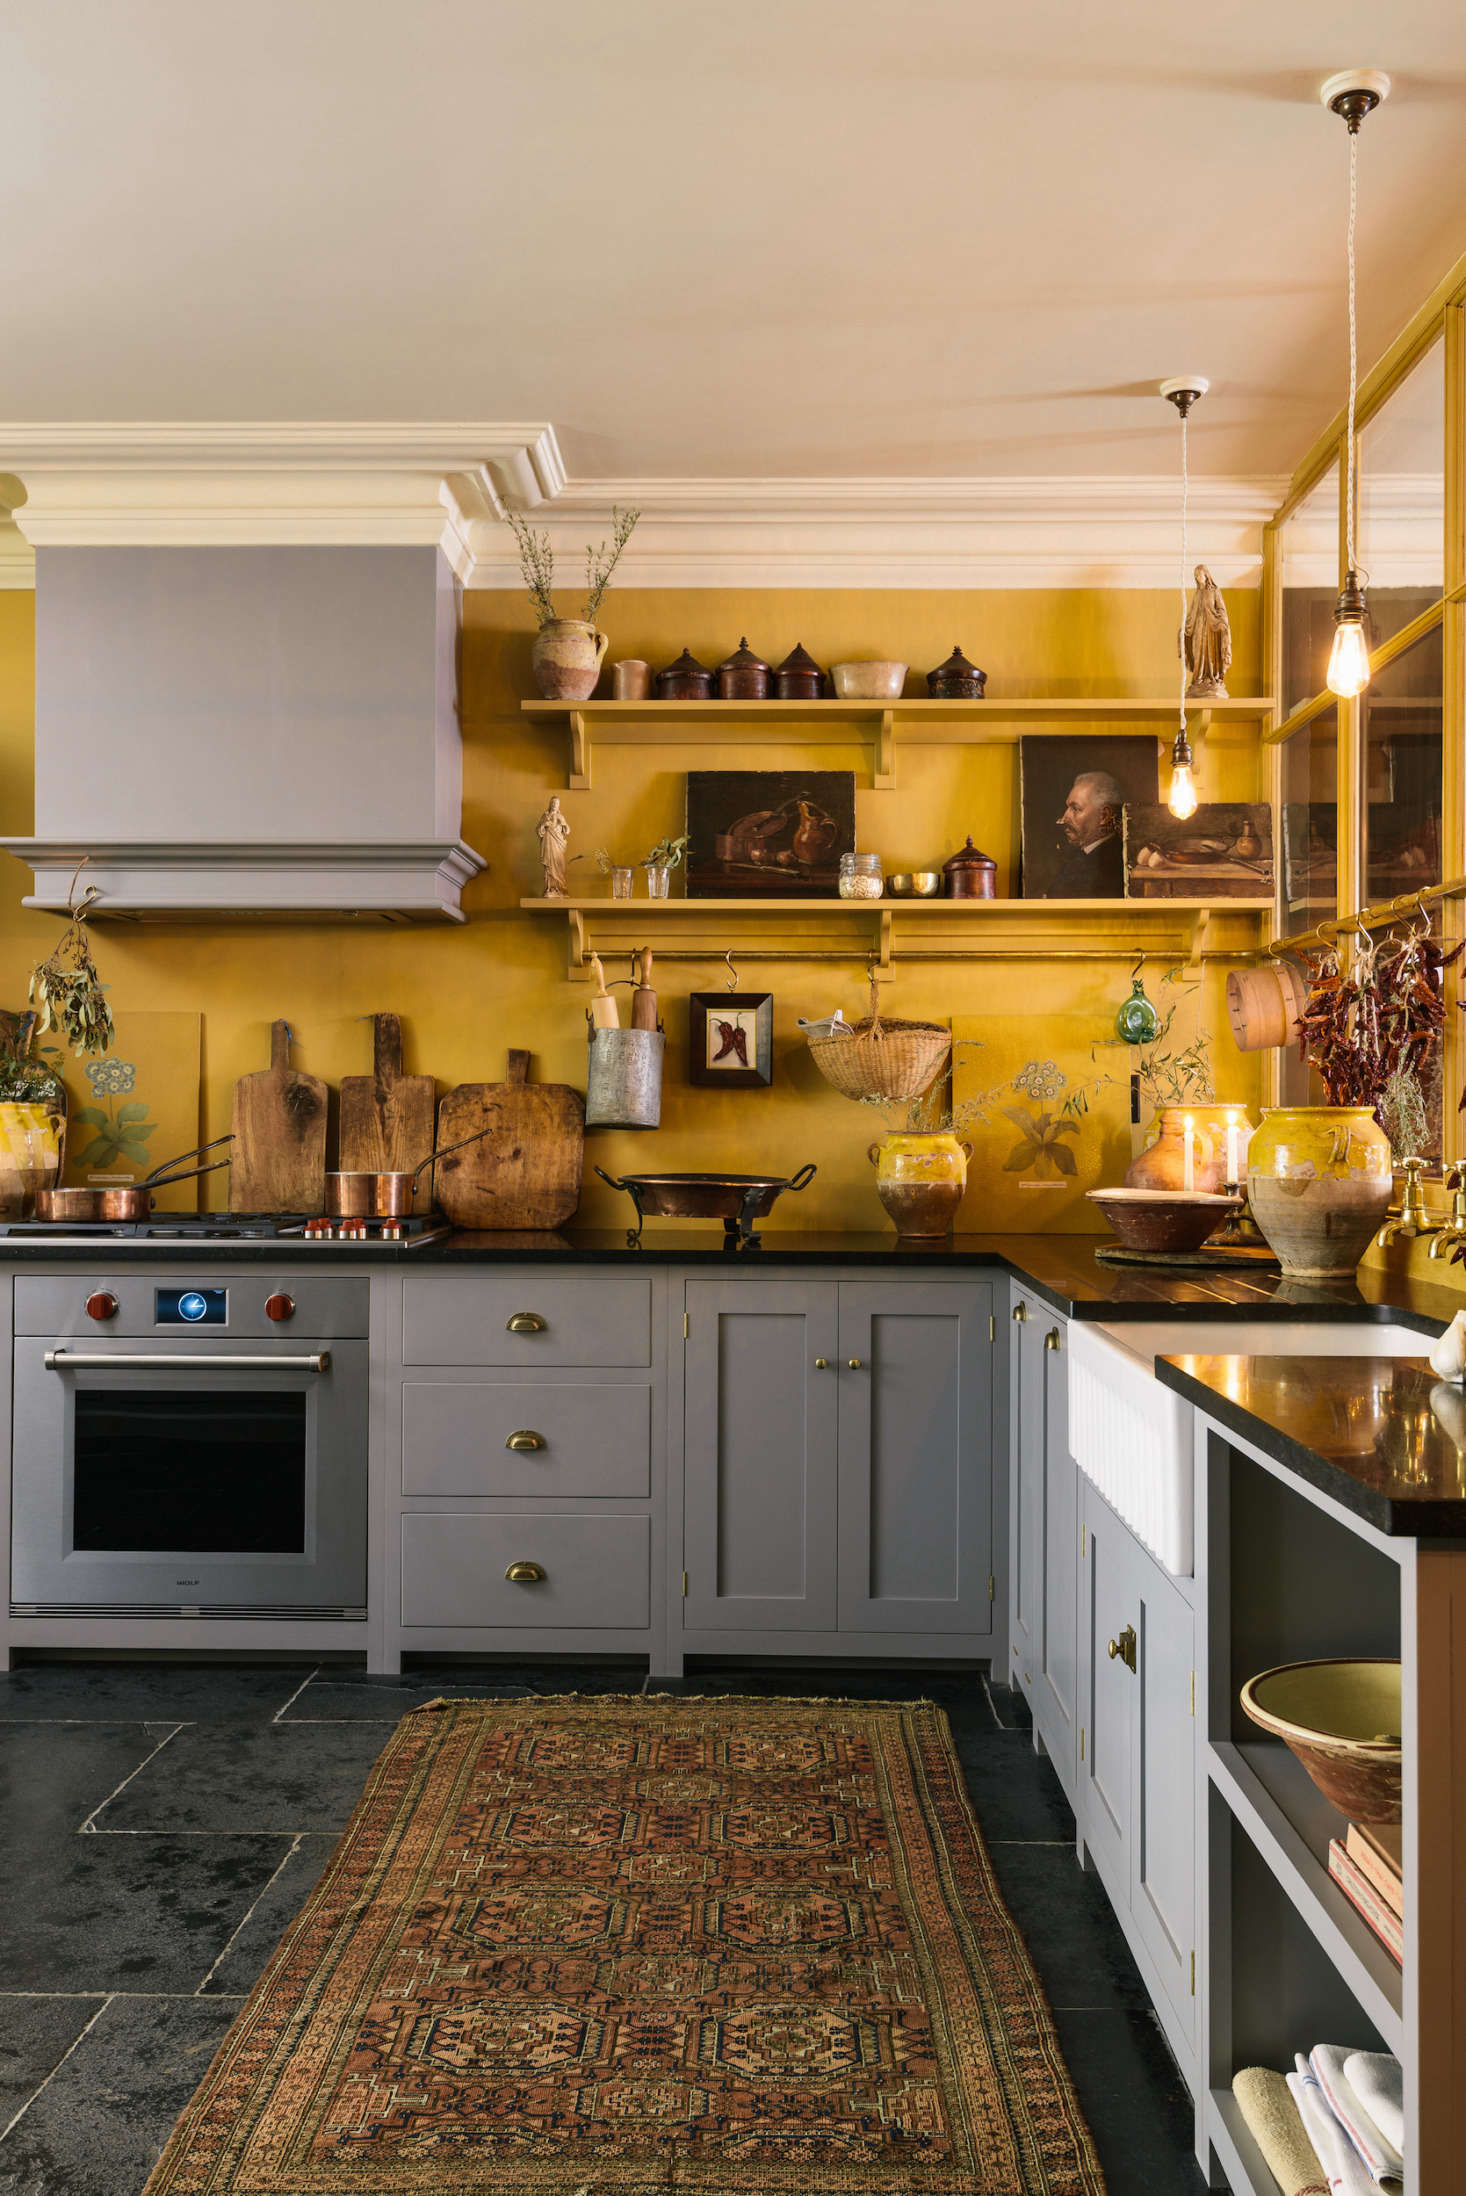 Parker sourced many of the decorative touches—confit jars, oil paintings, Spanish baskets—from flea markets and antique fairs. The integrated stove is by Wolf. The countertops are Belgian Blue Limestone.